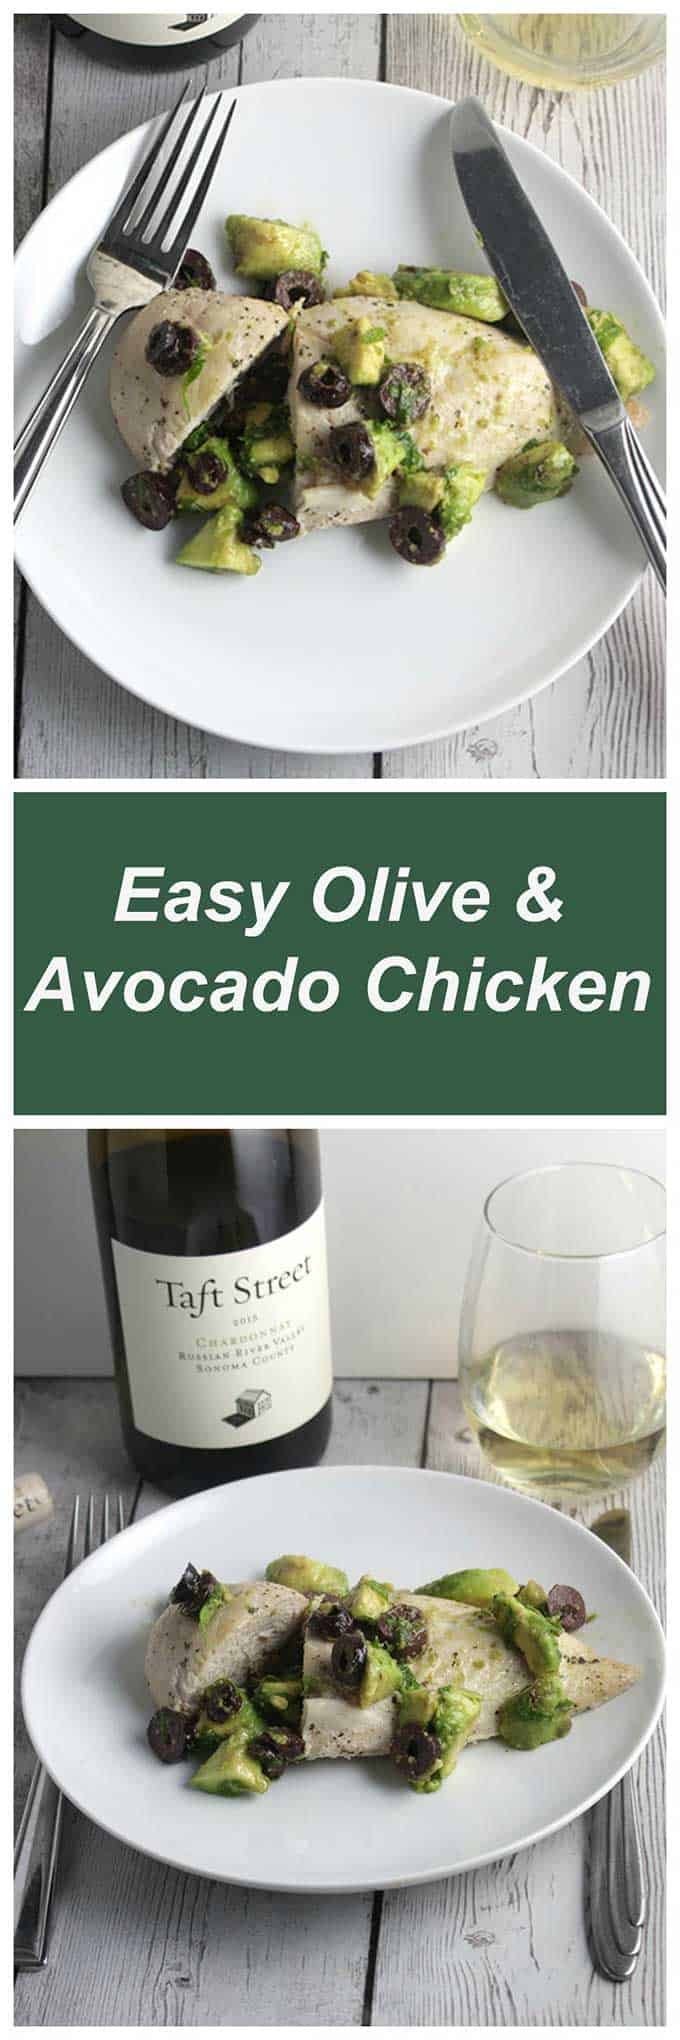 Easy Olive and Avocado Chicken recipe features a tasty and healthy topping quickly made while the chicken bakes. #easymeals #chickenrecipes #avocado